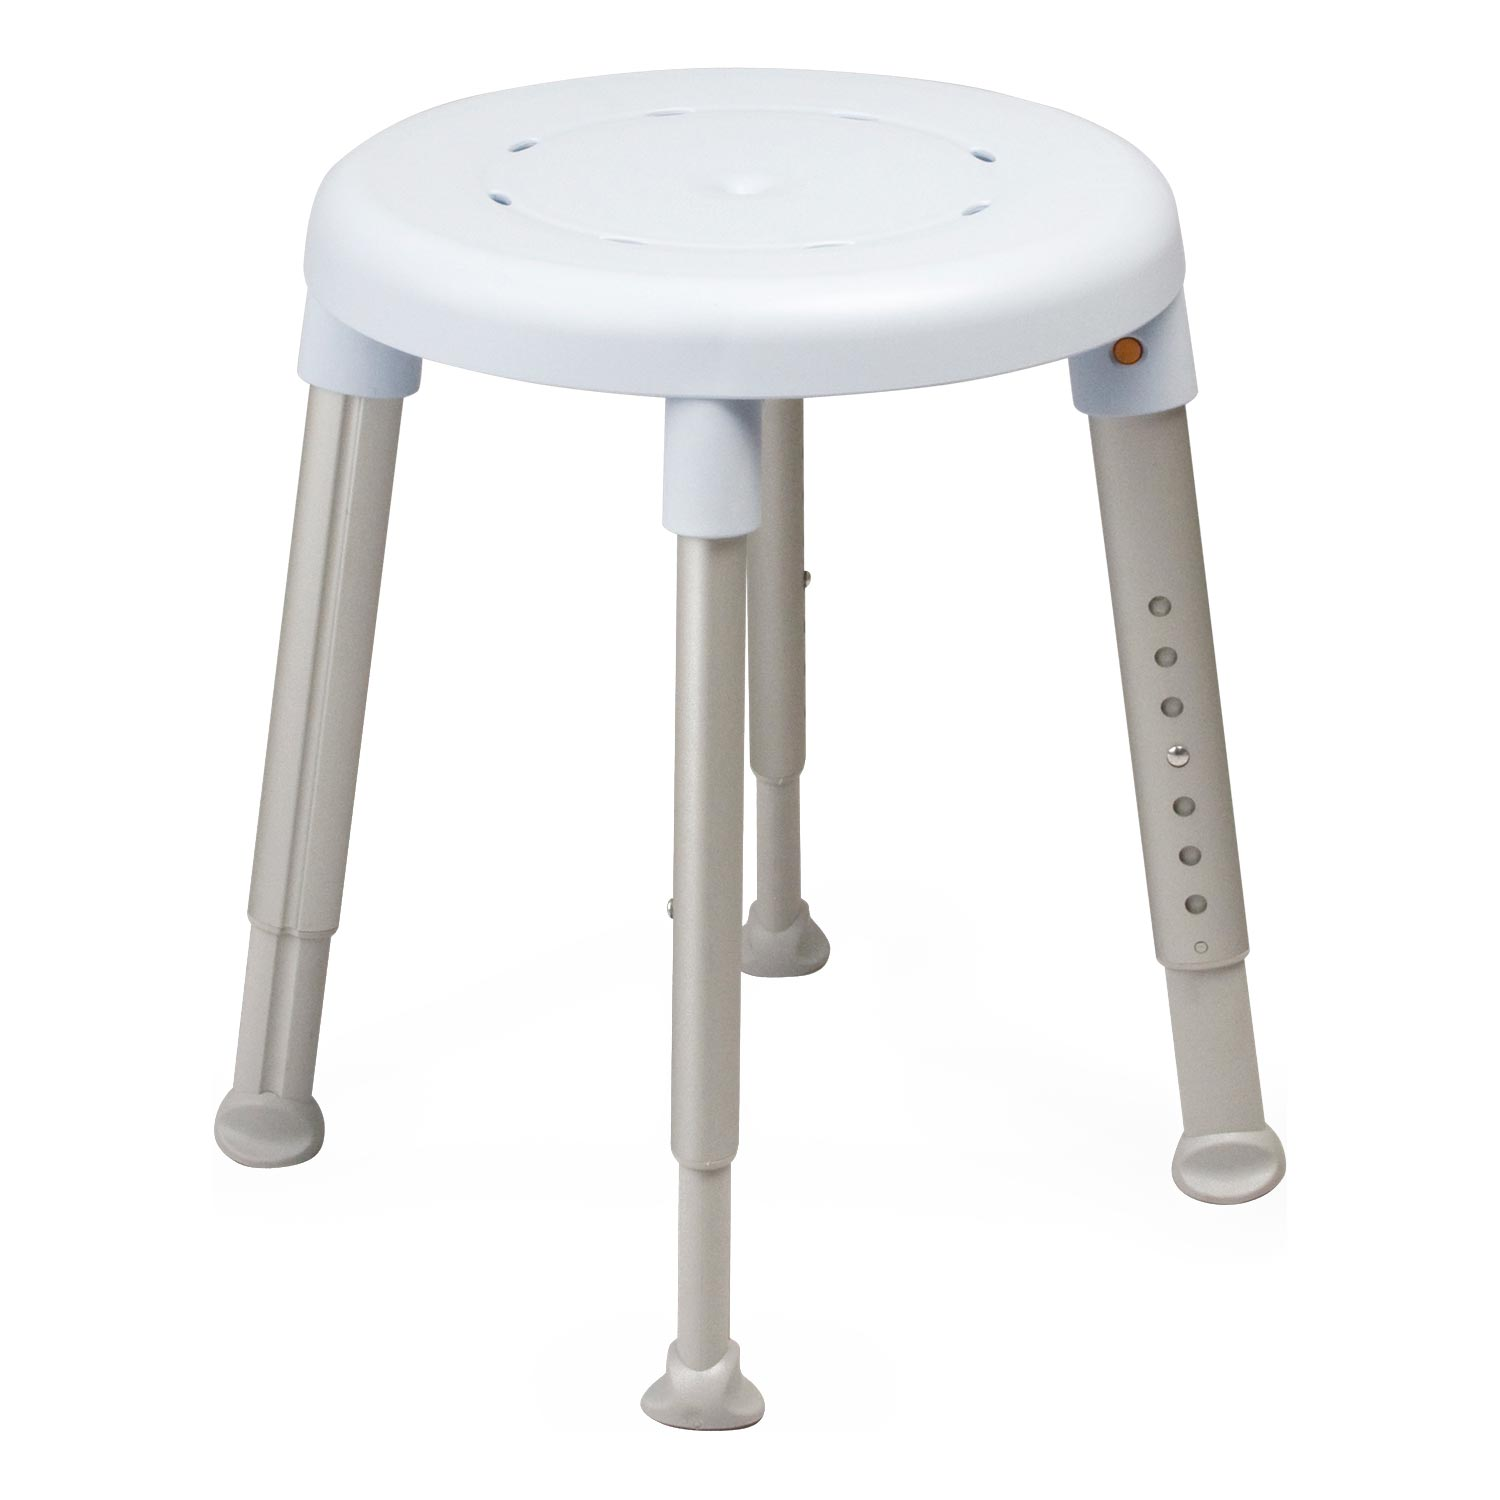 Etac Easy shower stool